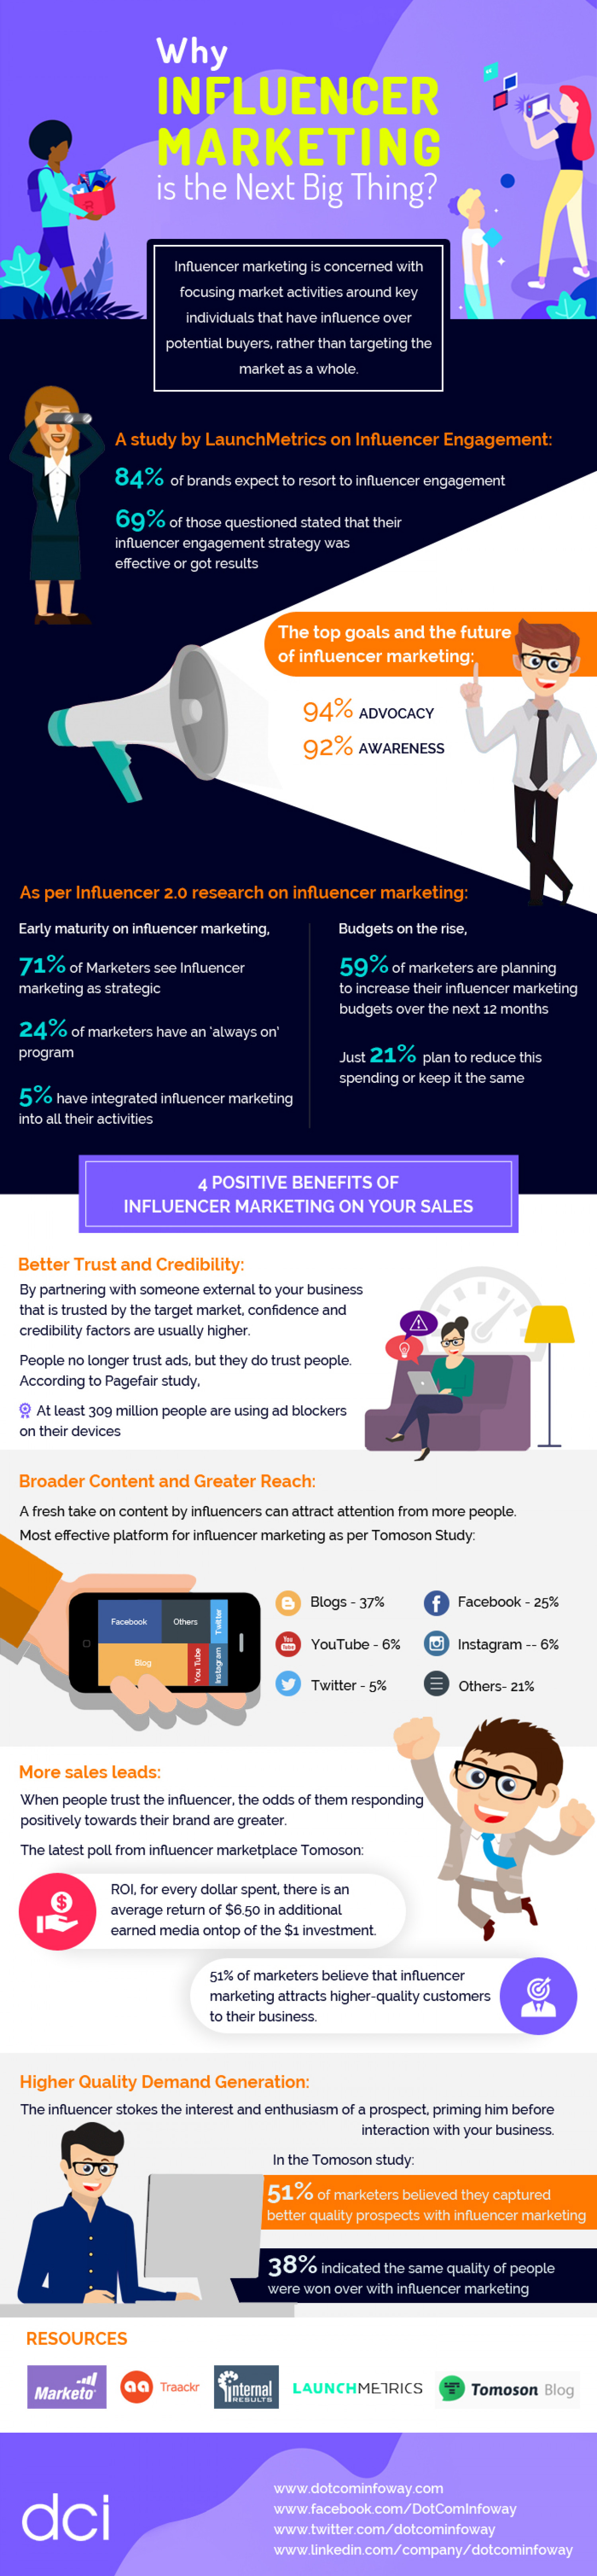 Why Influencer Marketing is the Next Big Thing? Infographic